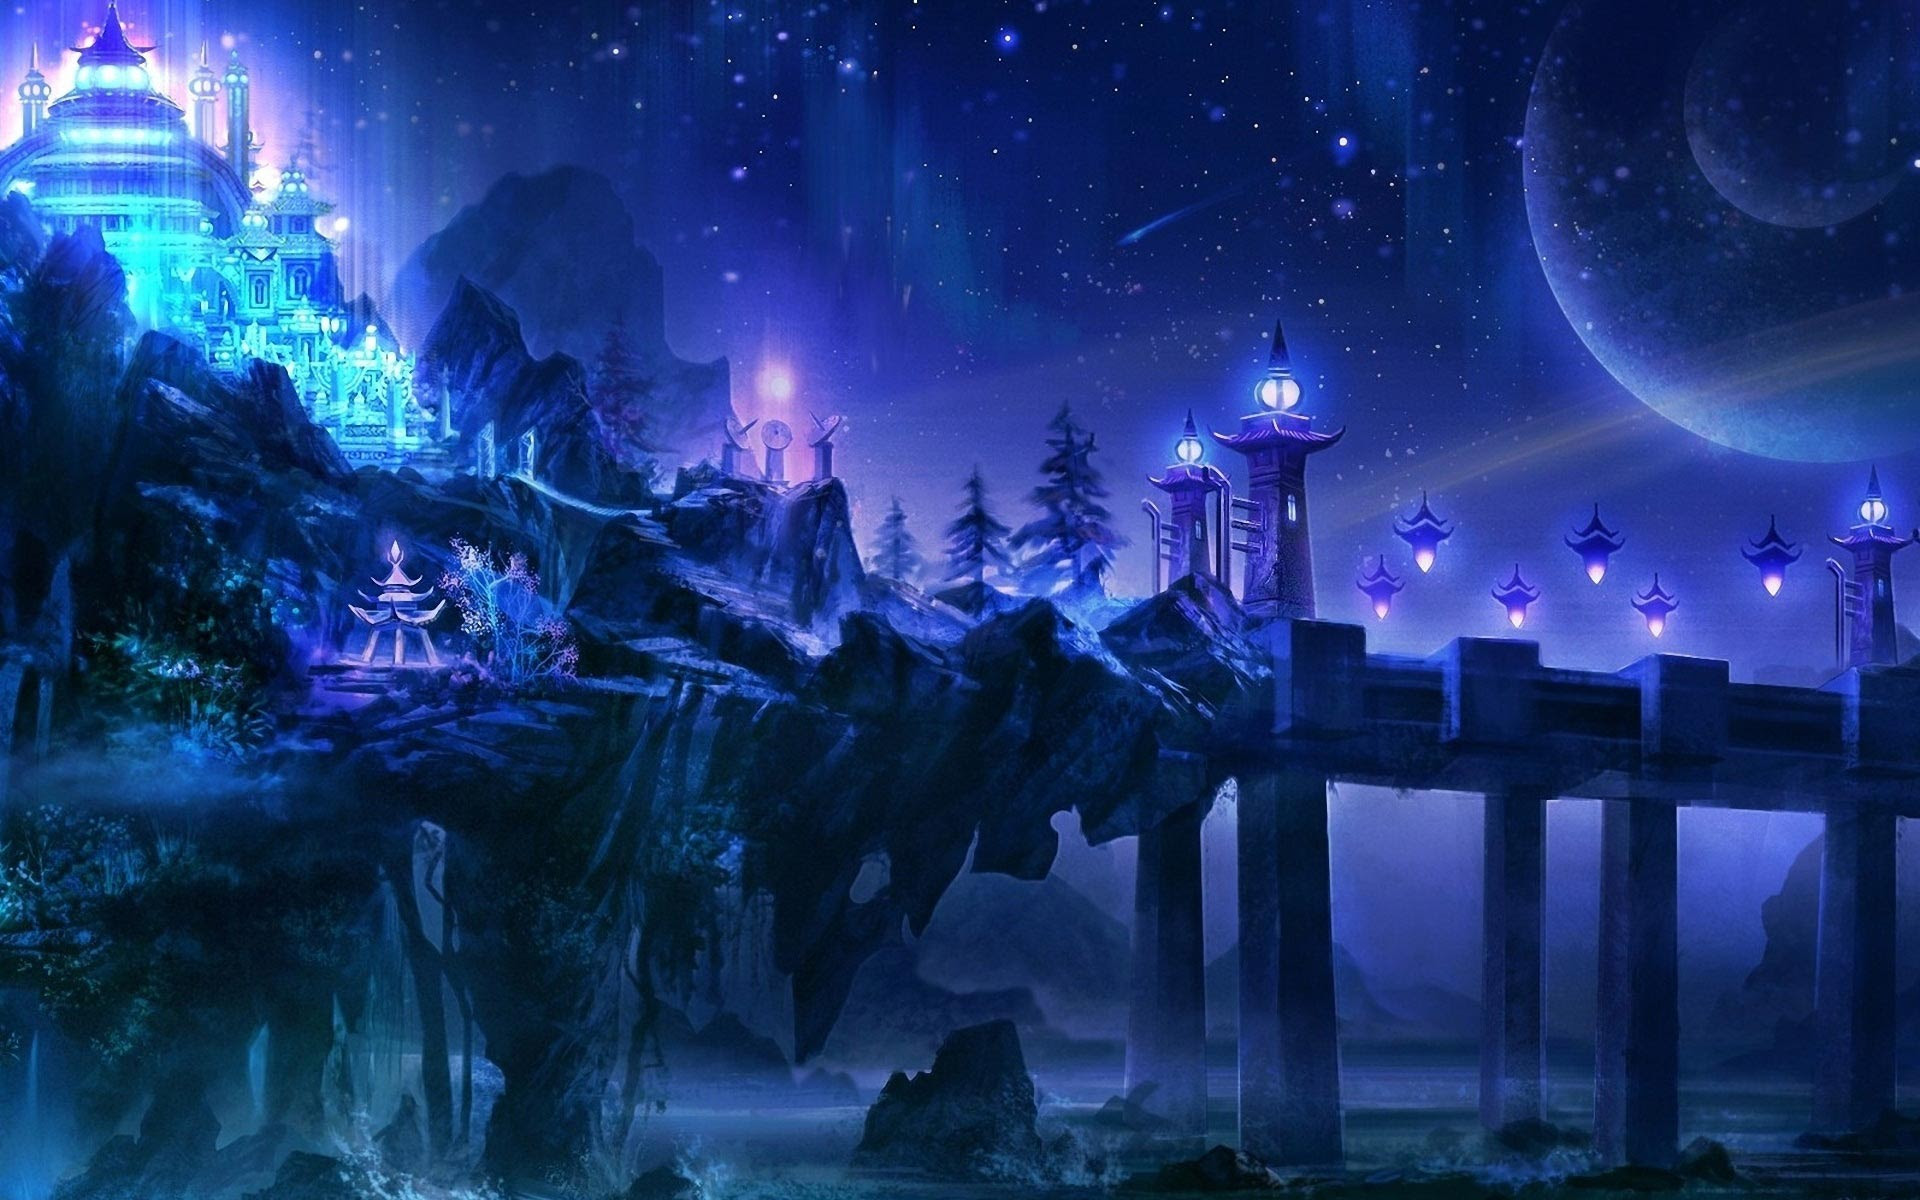 windows 8 fantasy space hd 3d wallpapers | space wallpaper